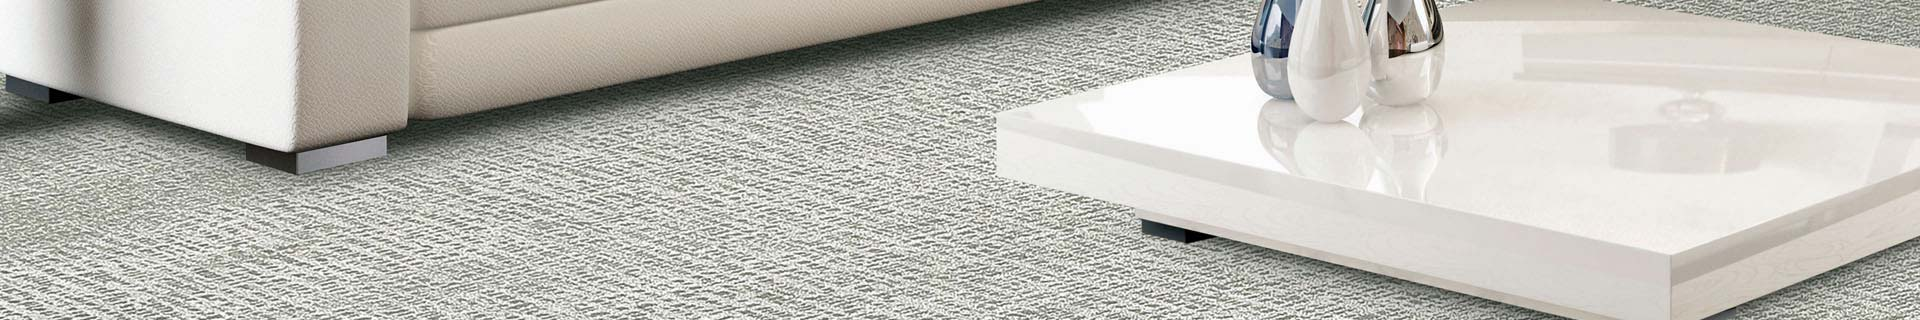 STARLIGHT - Featured Collections - Broadloom Carpet